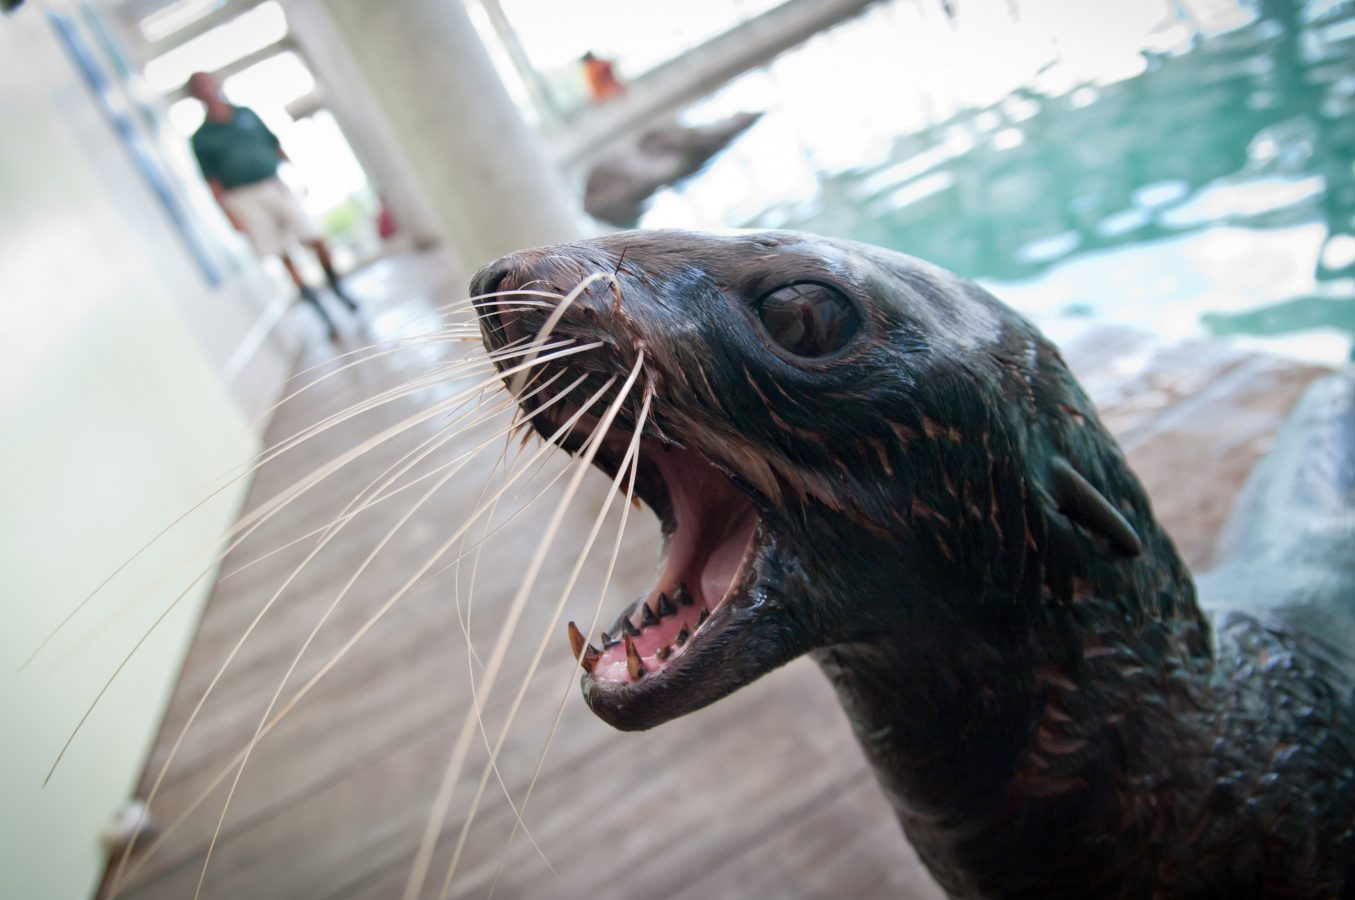 fur seal opens mouth in exhibit